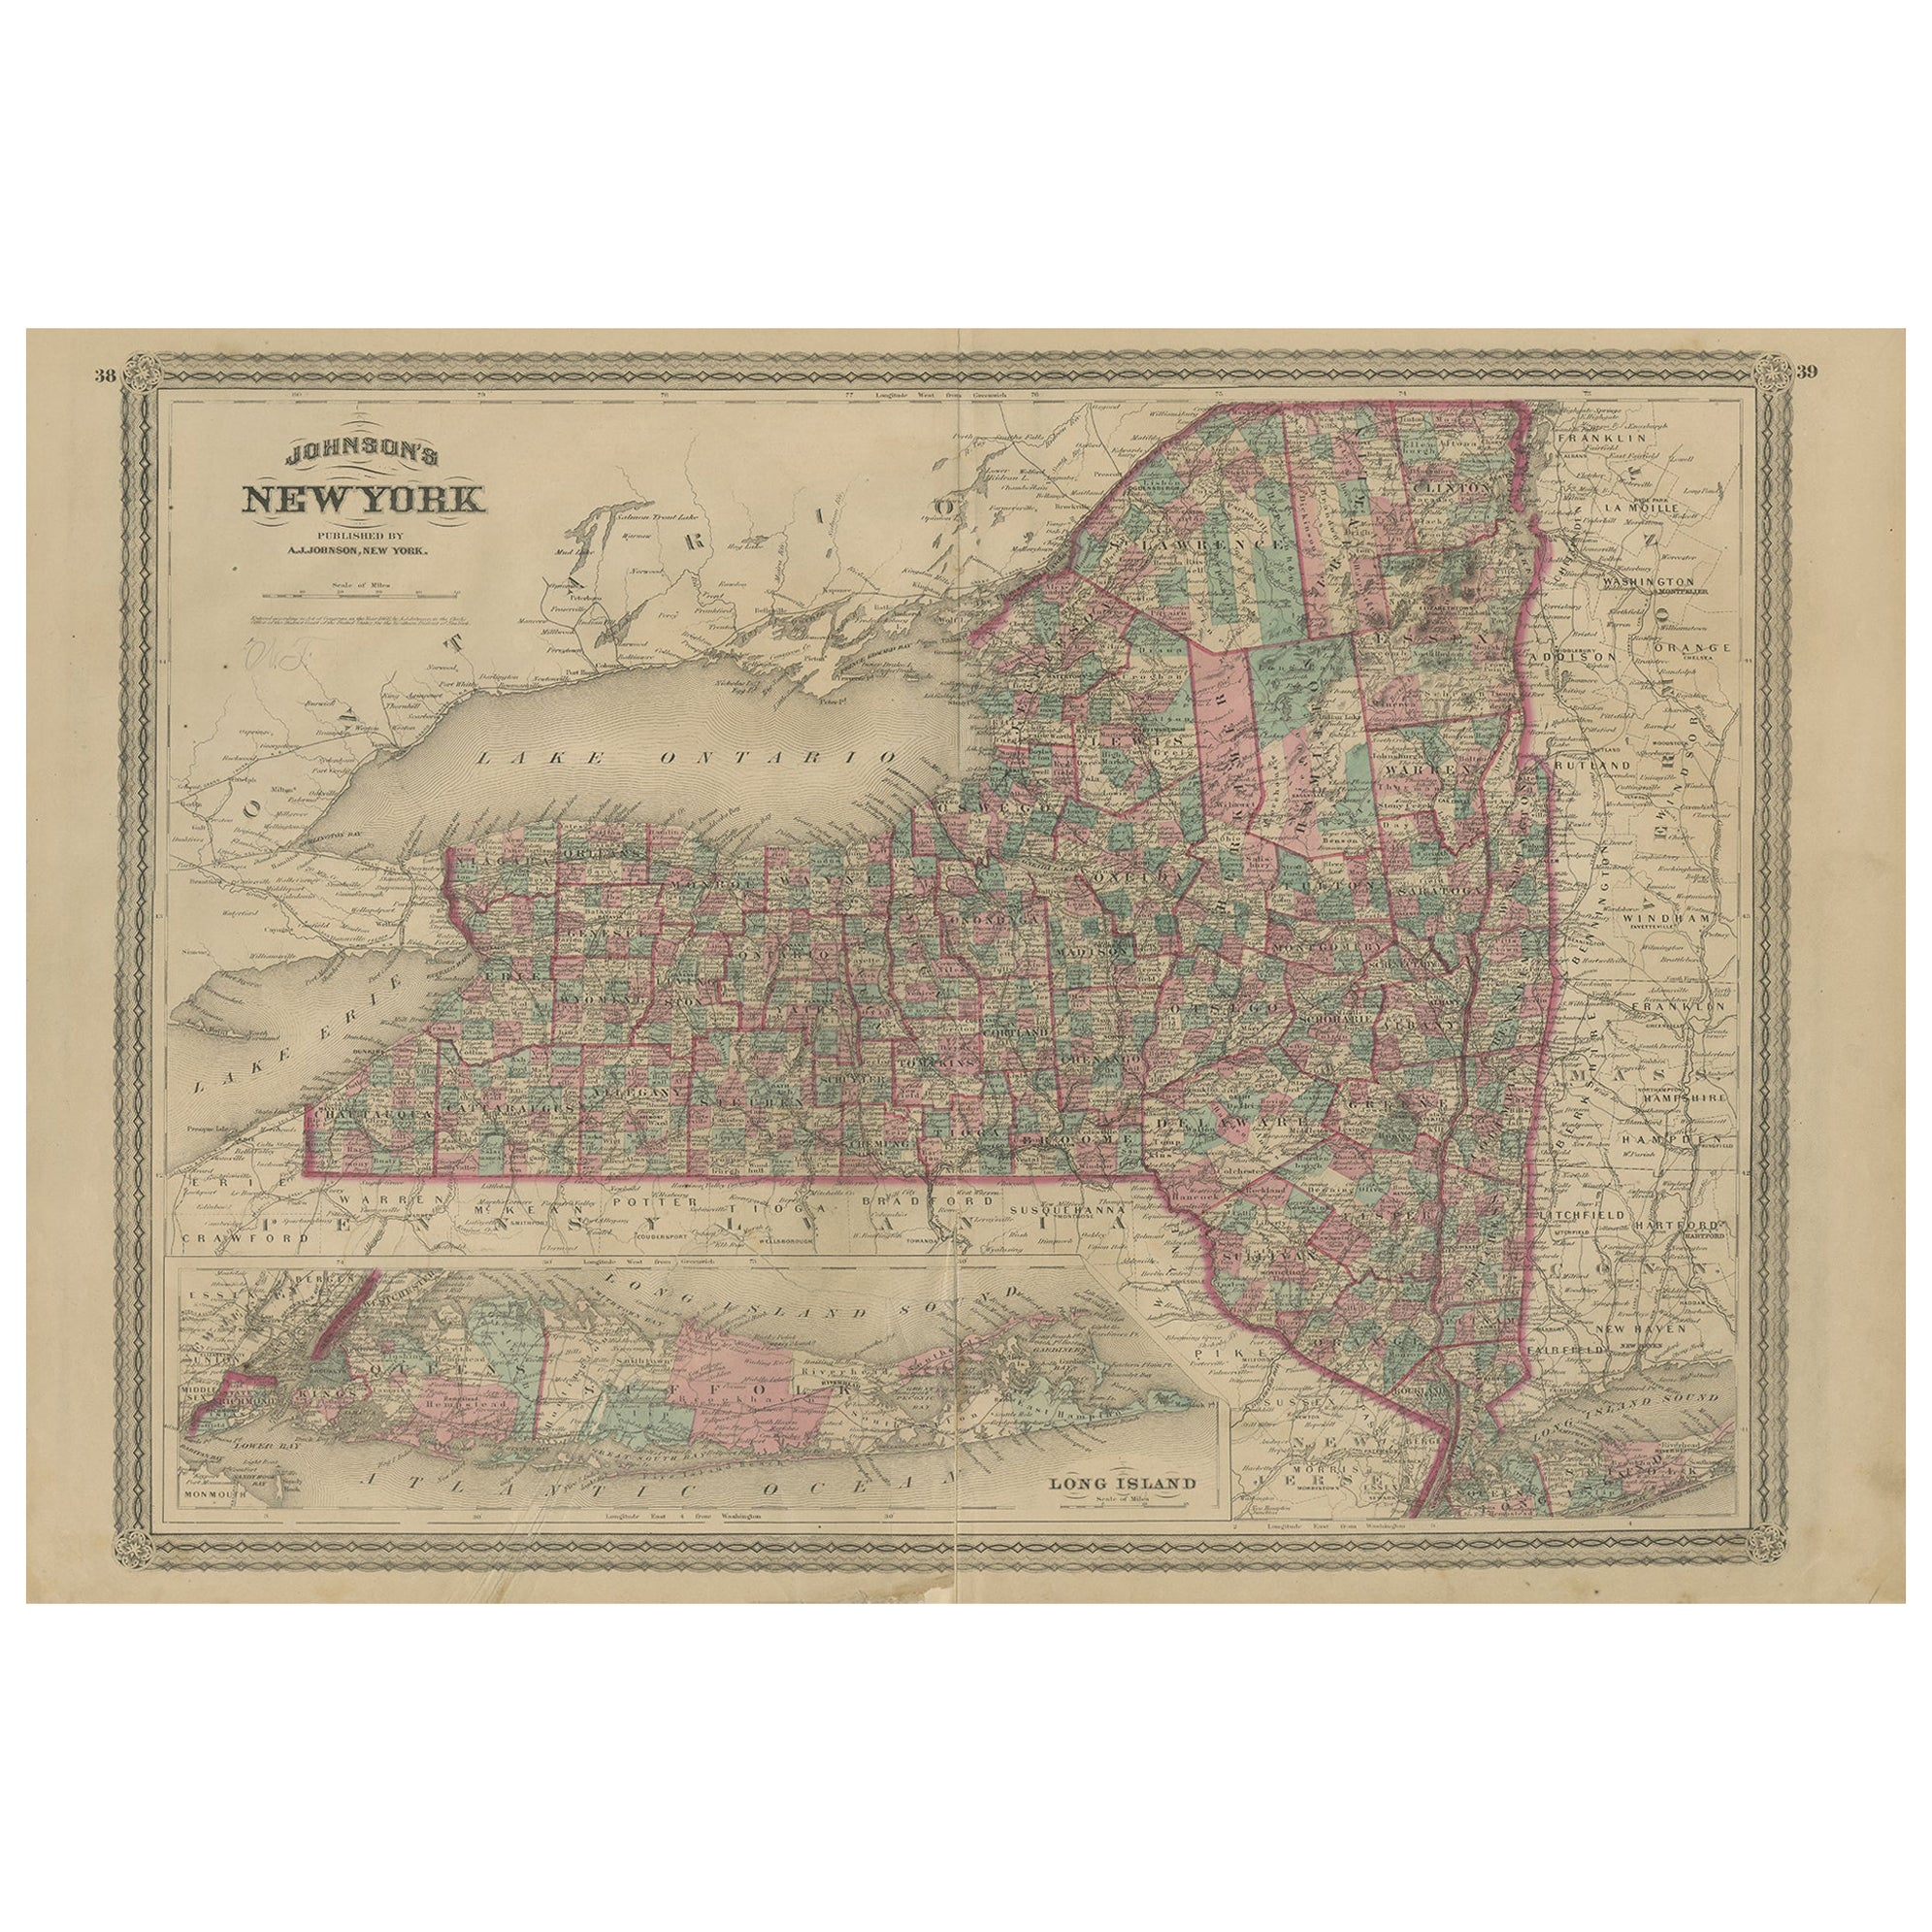 Antique Map of New York by Johnson '1872'